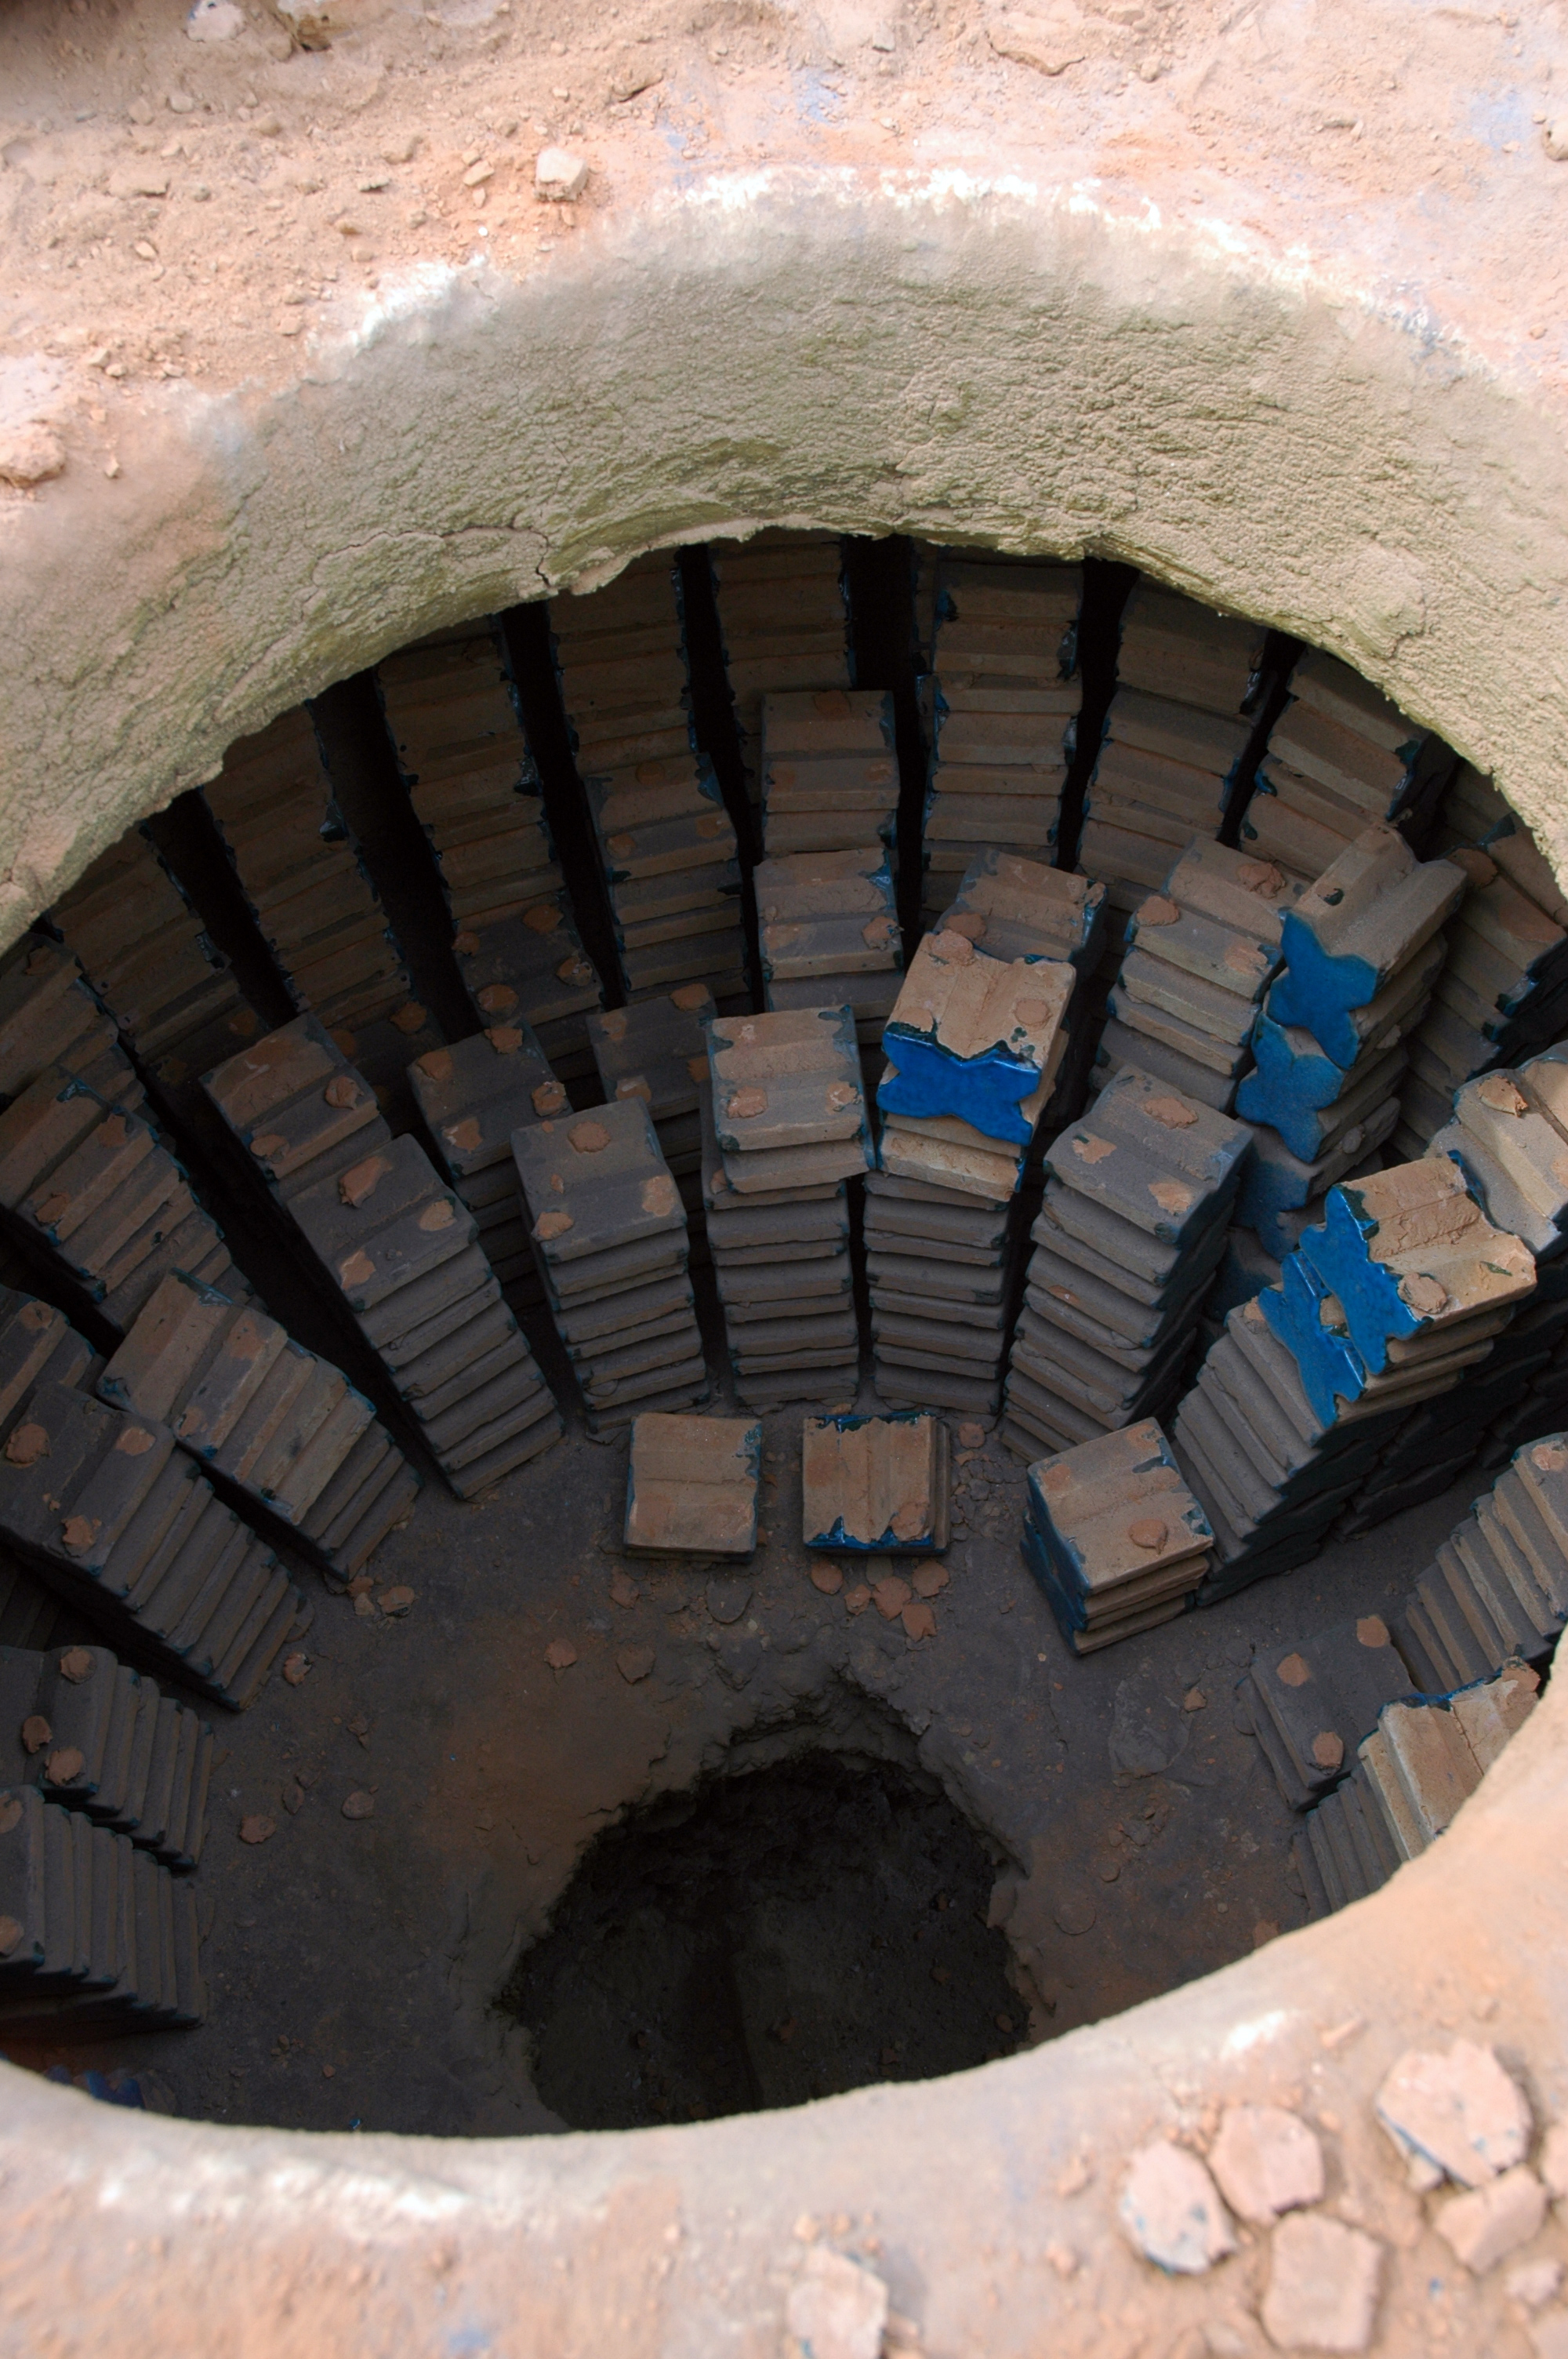 Visiting 200 year old Kiln in Interior Sindh, outside Karachi